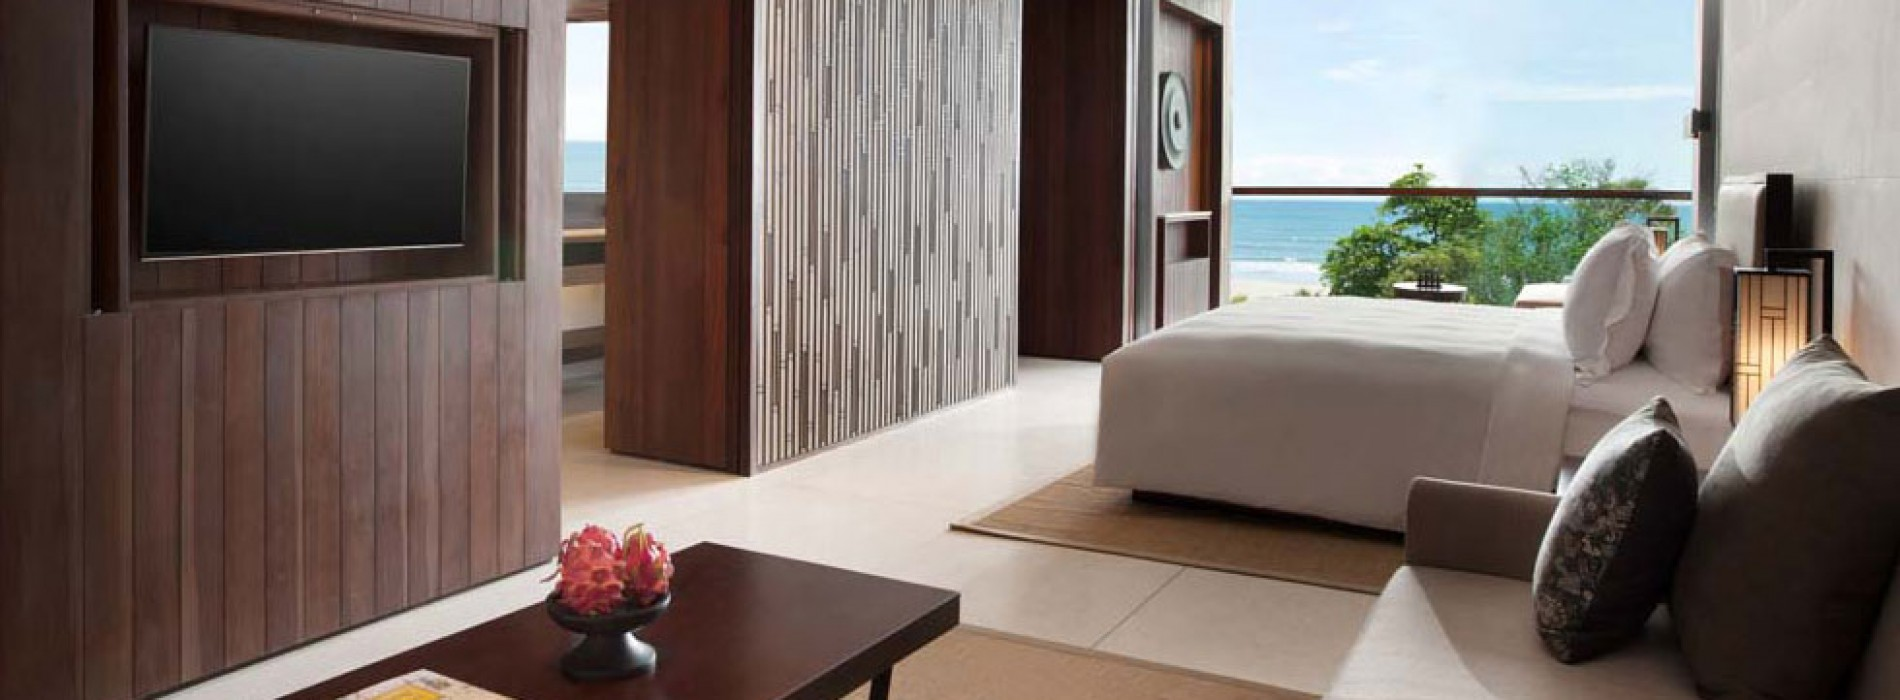 ALILA SEMINYAK– ON THE BEACH AND MAKING WAVES!